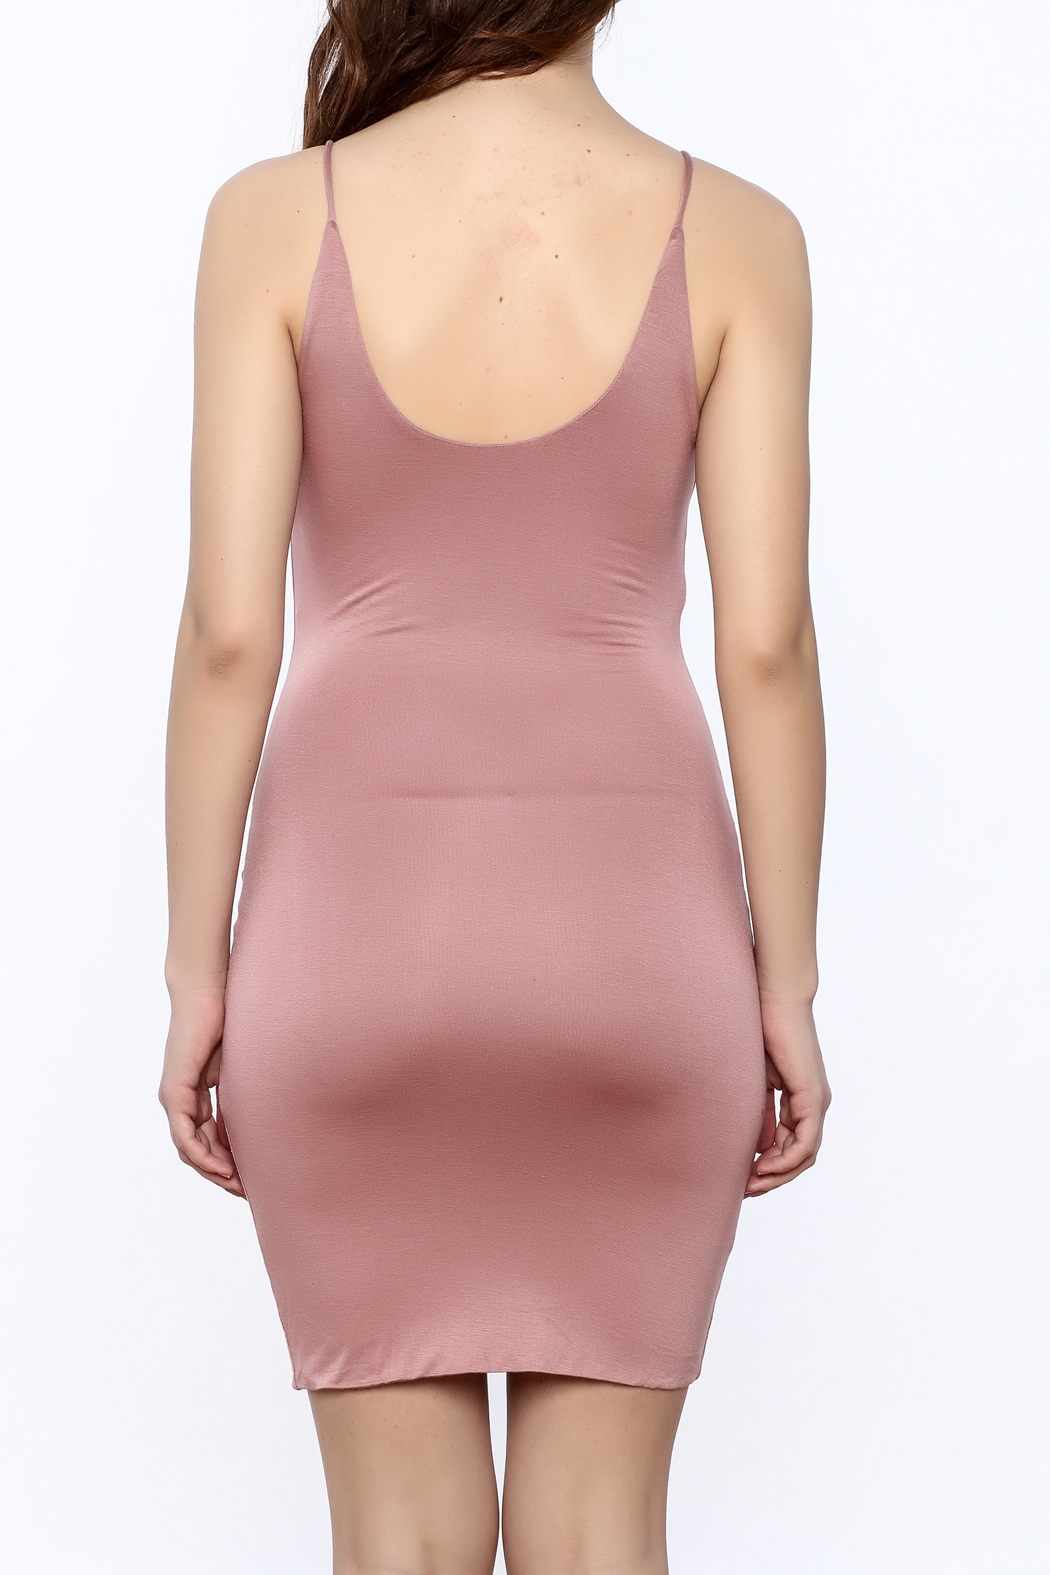 K too Bodycon Tank Dress - Back Cropped Image